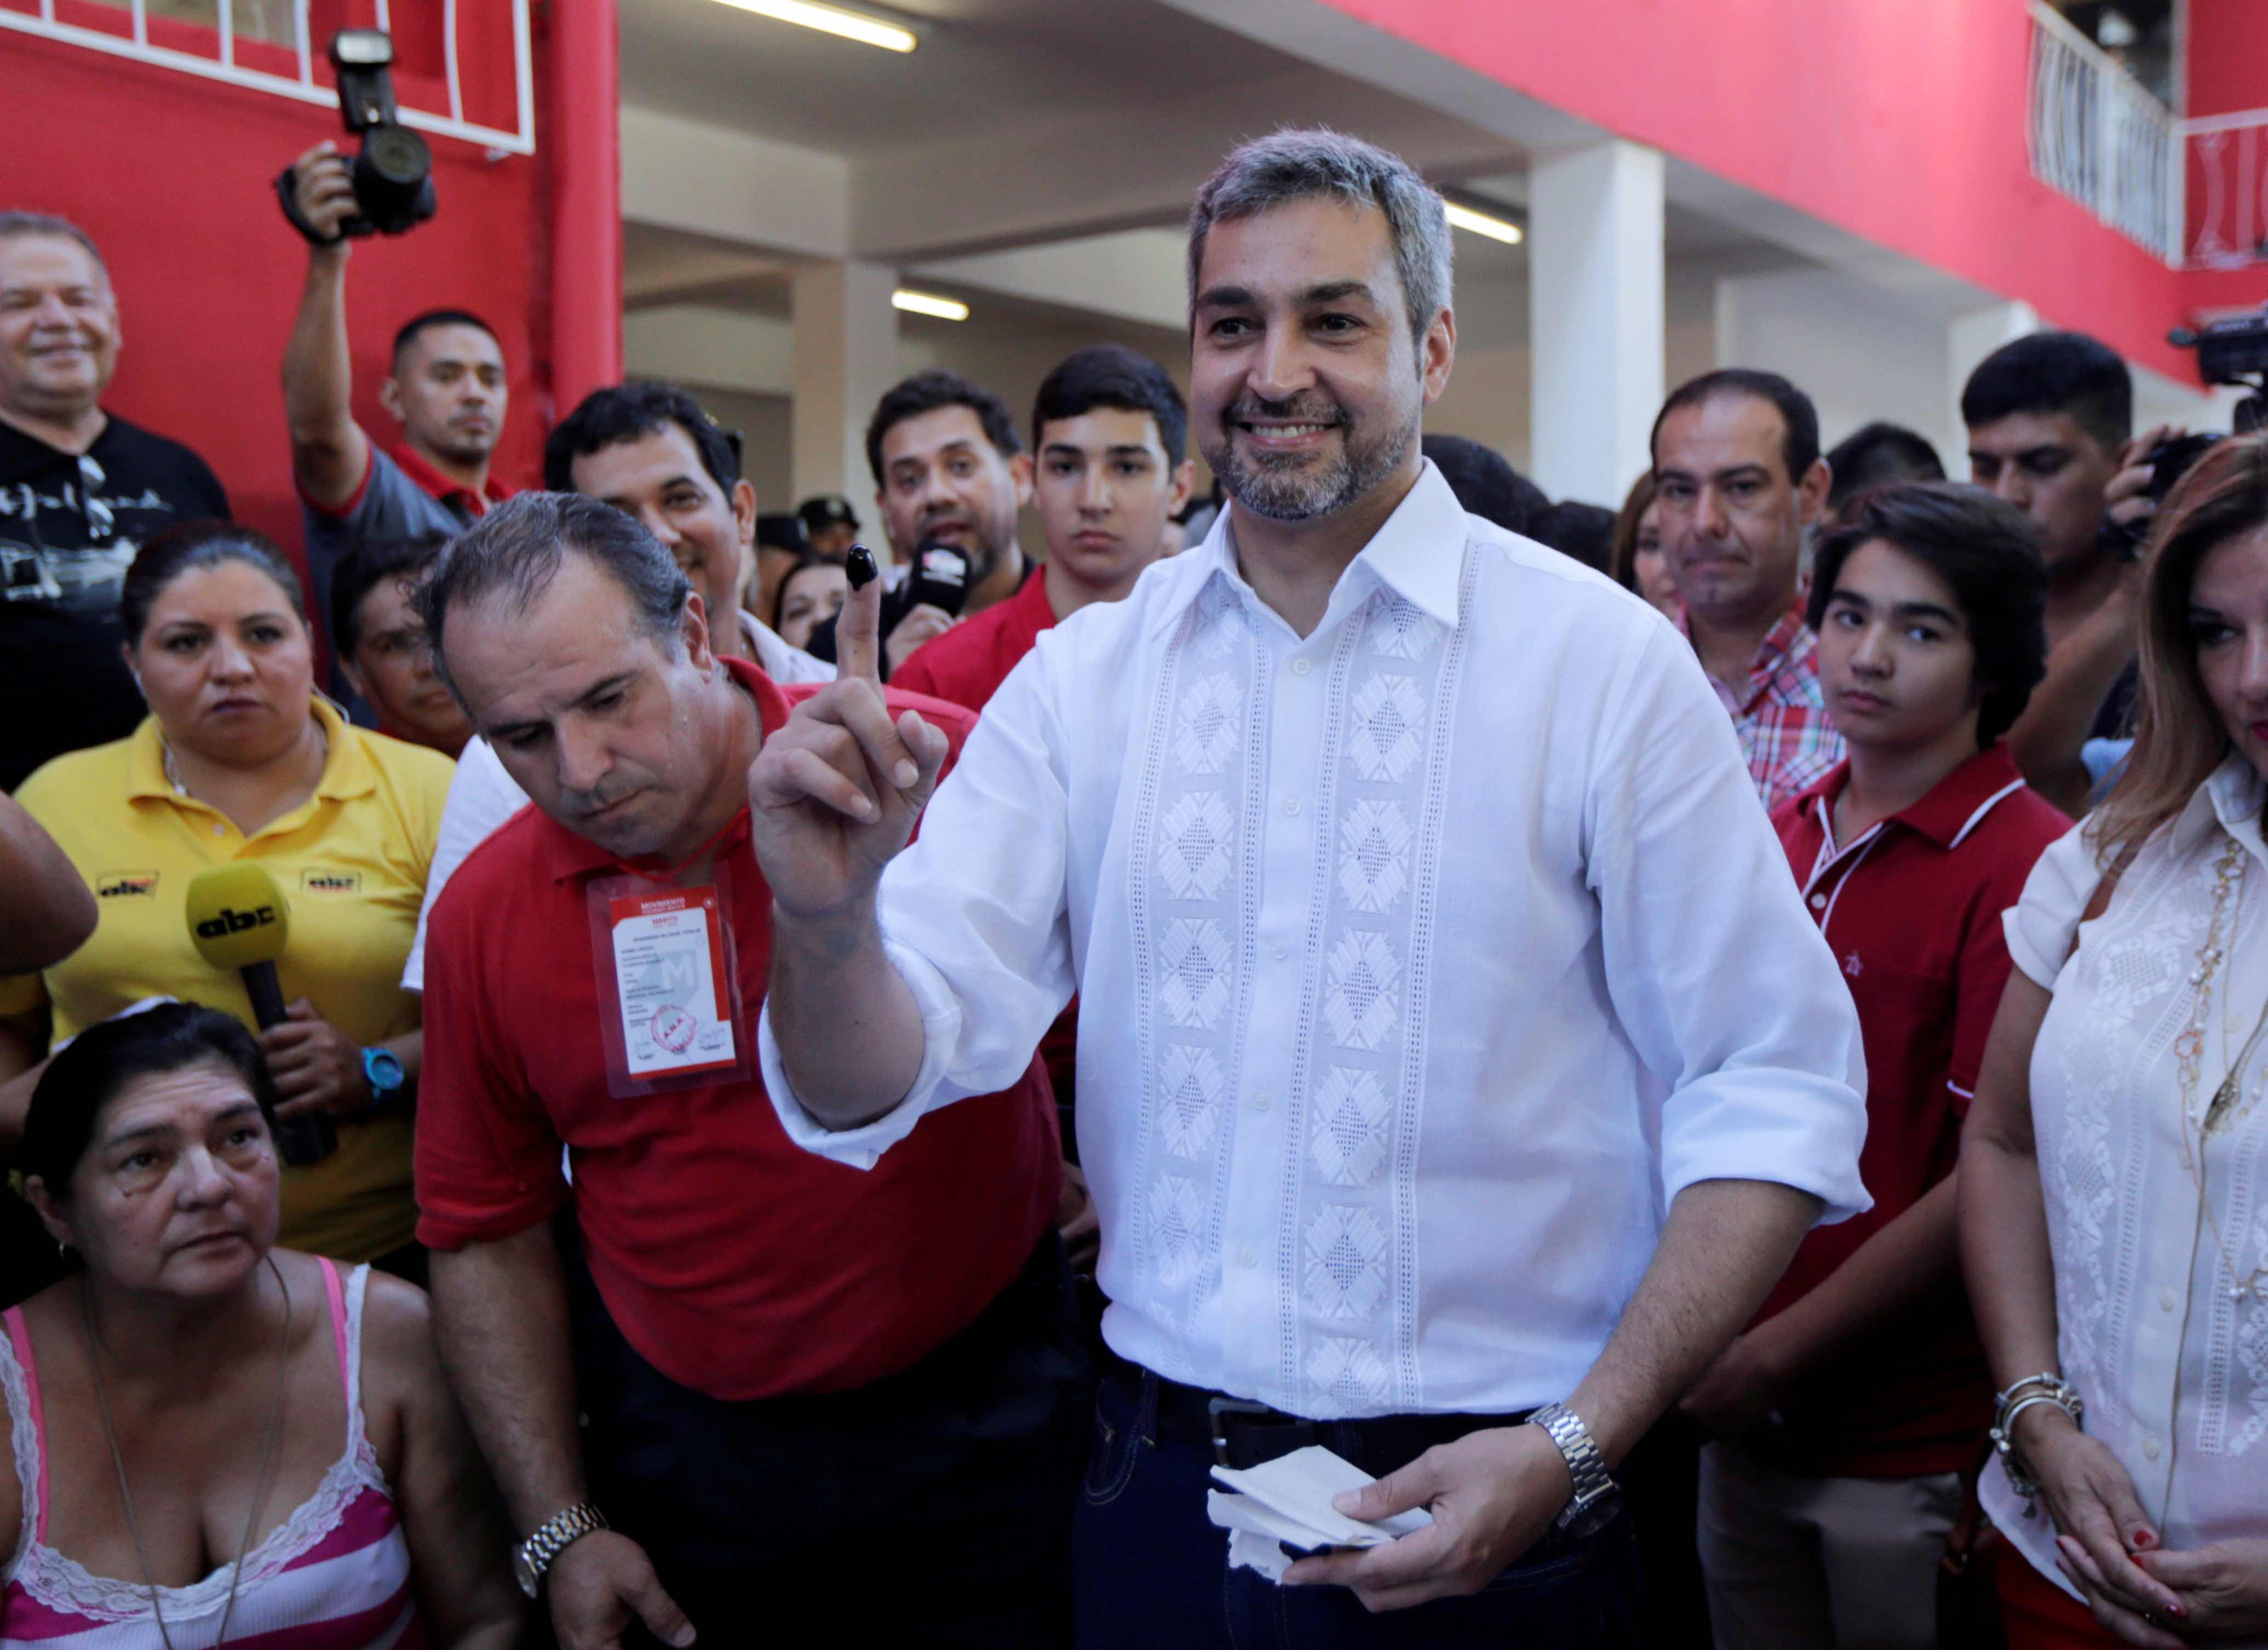 Paraguay Senator With Dictatorship Ties to Run for President